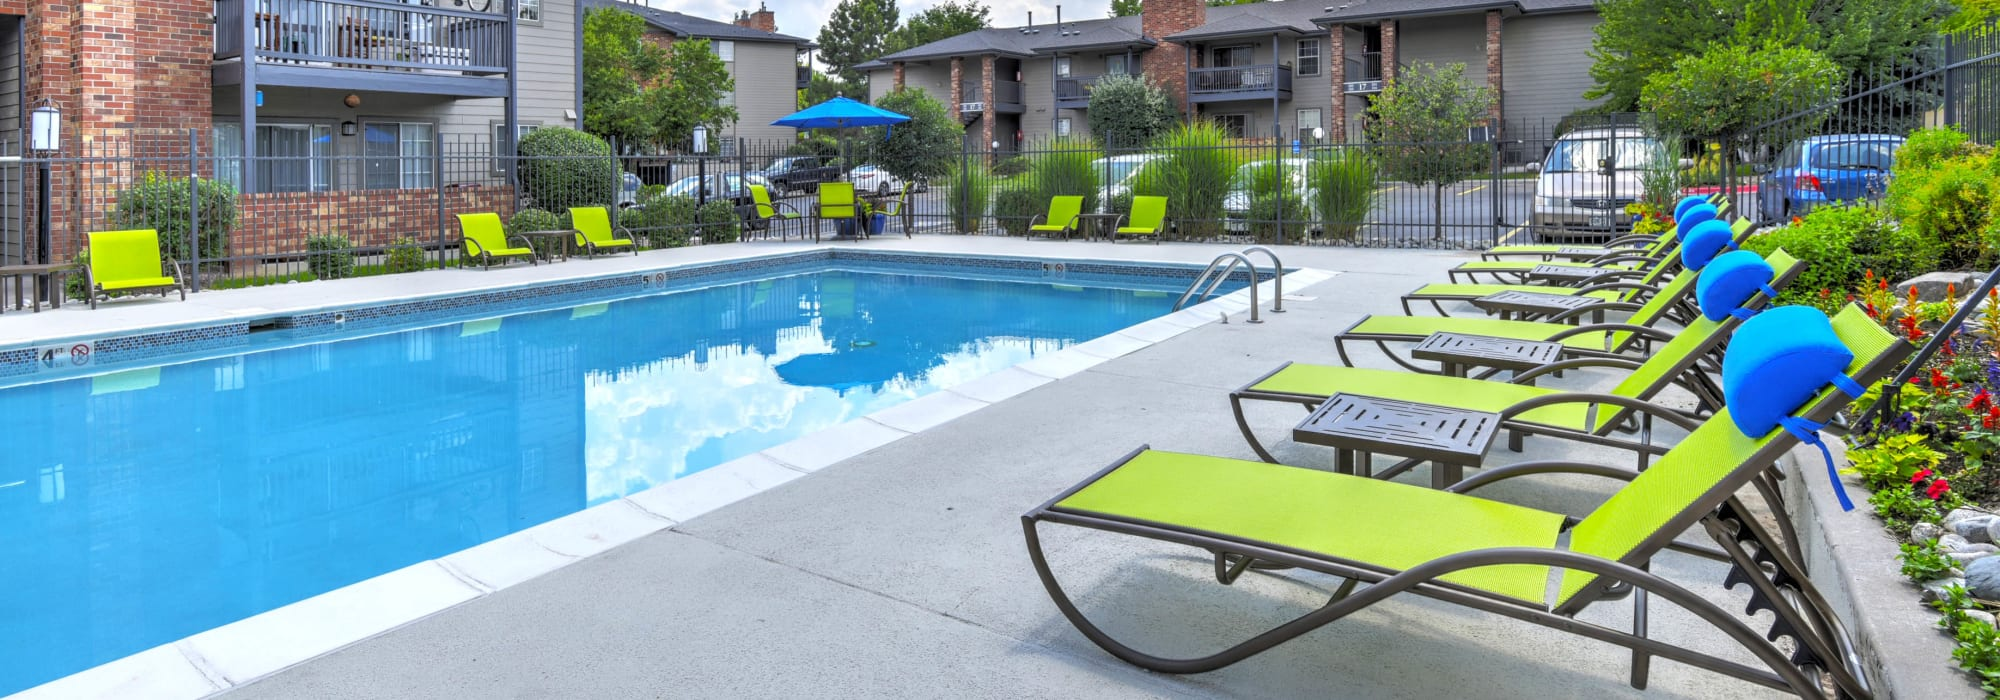 Pet friendly living at Arapahoe Club Apartments in Denver, Colorado